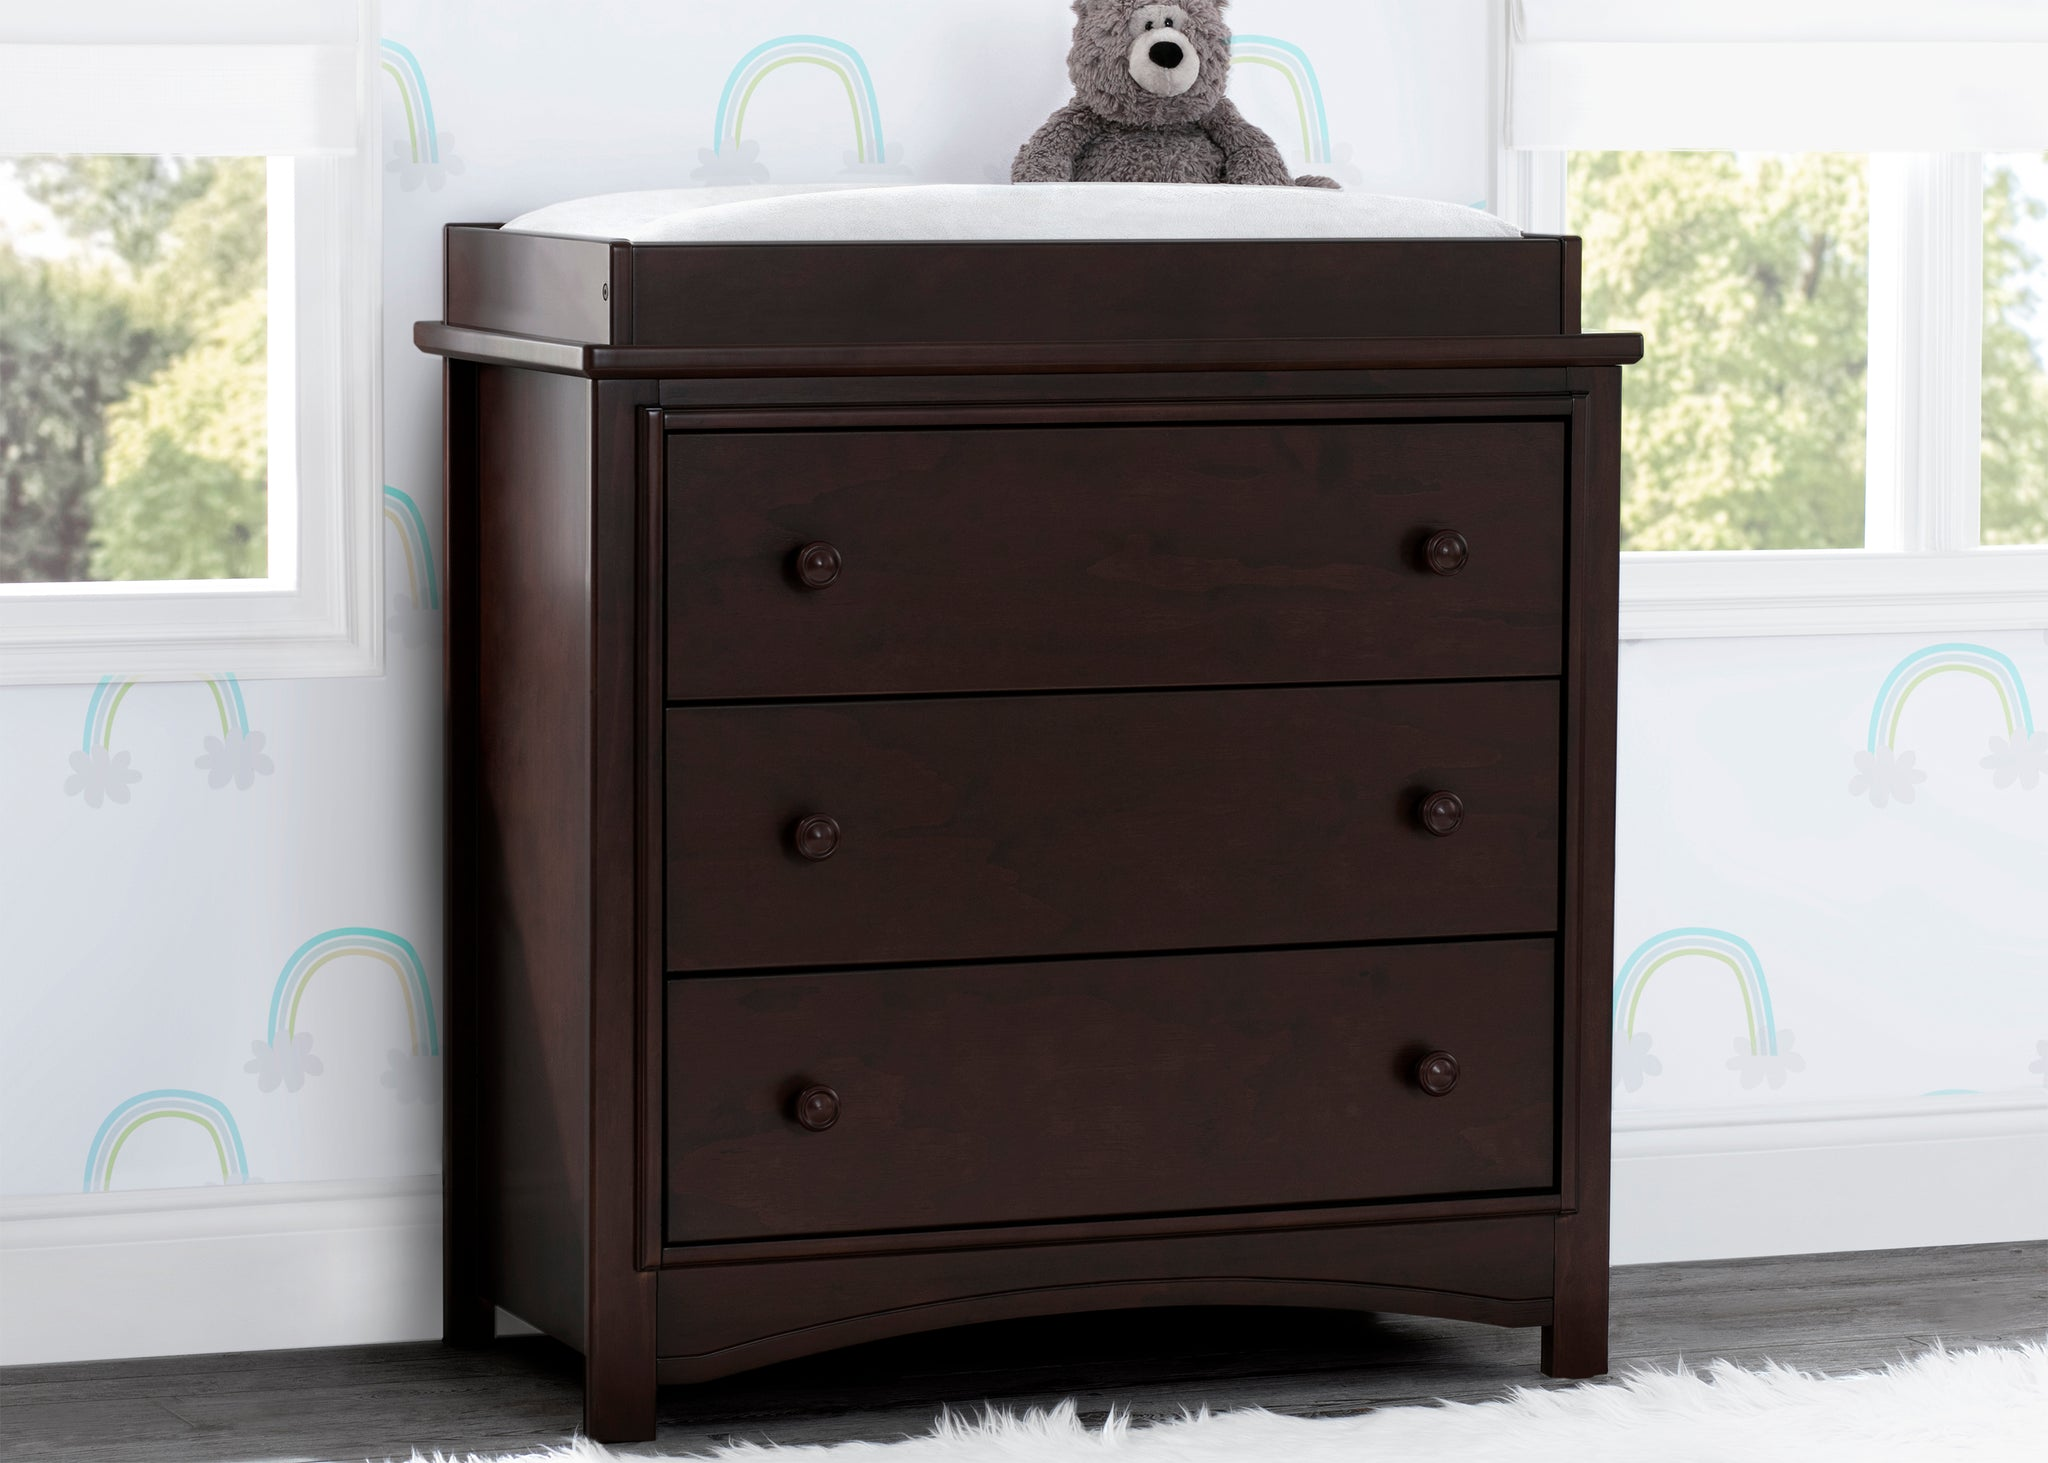 Delta Children Walnut Espresso (1324) Perry 3 Drawer Dresser with Changing Top, Hangtag View